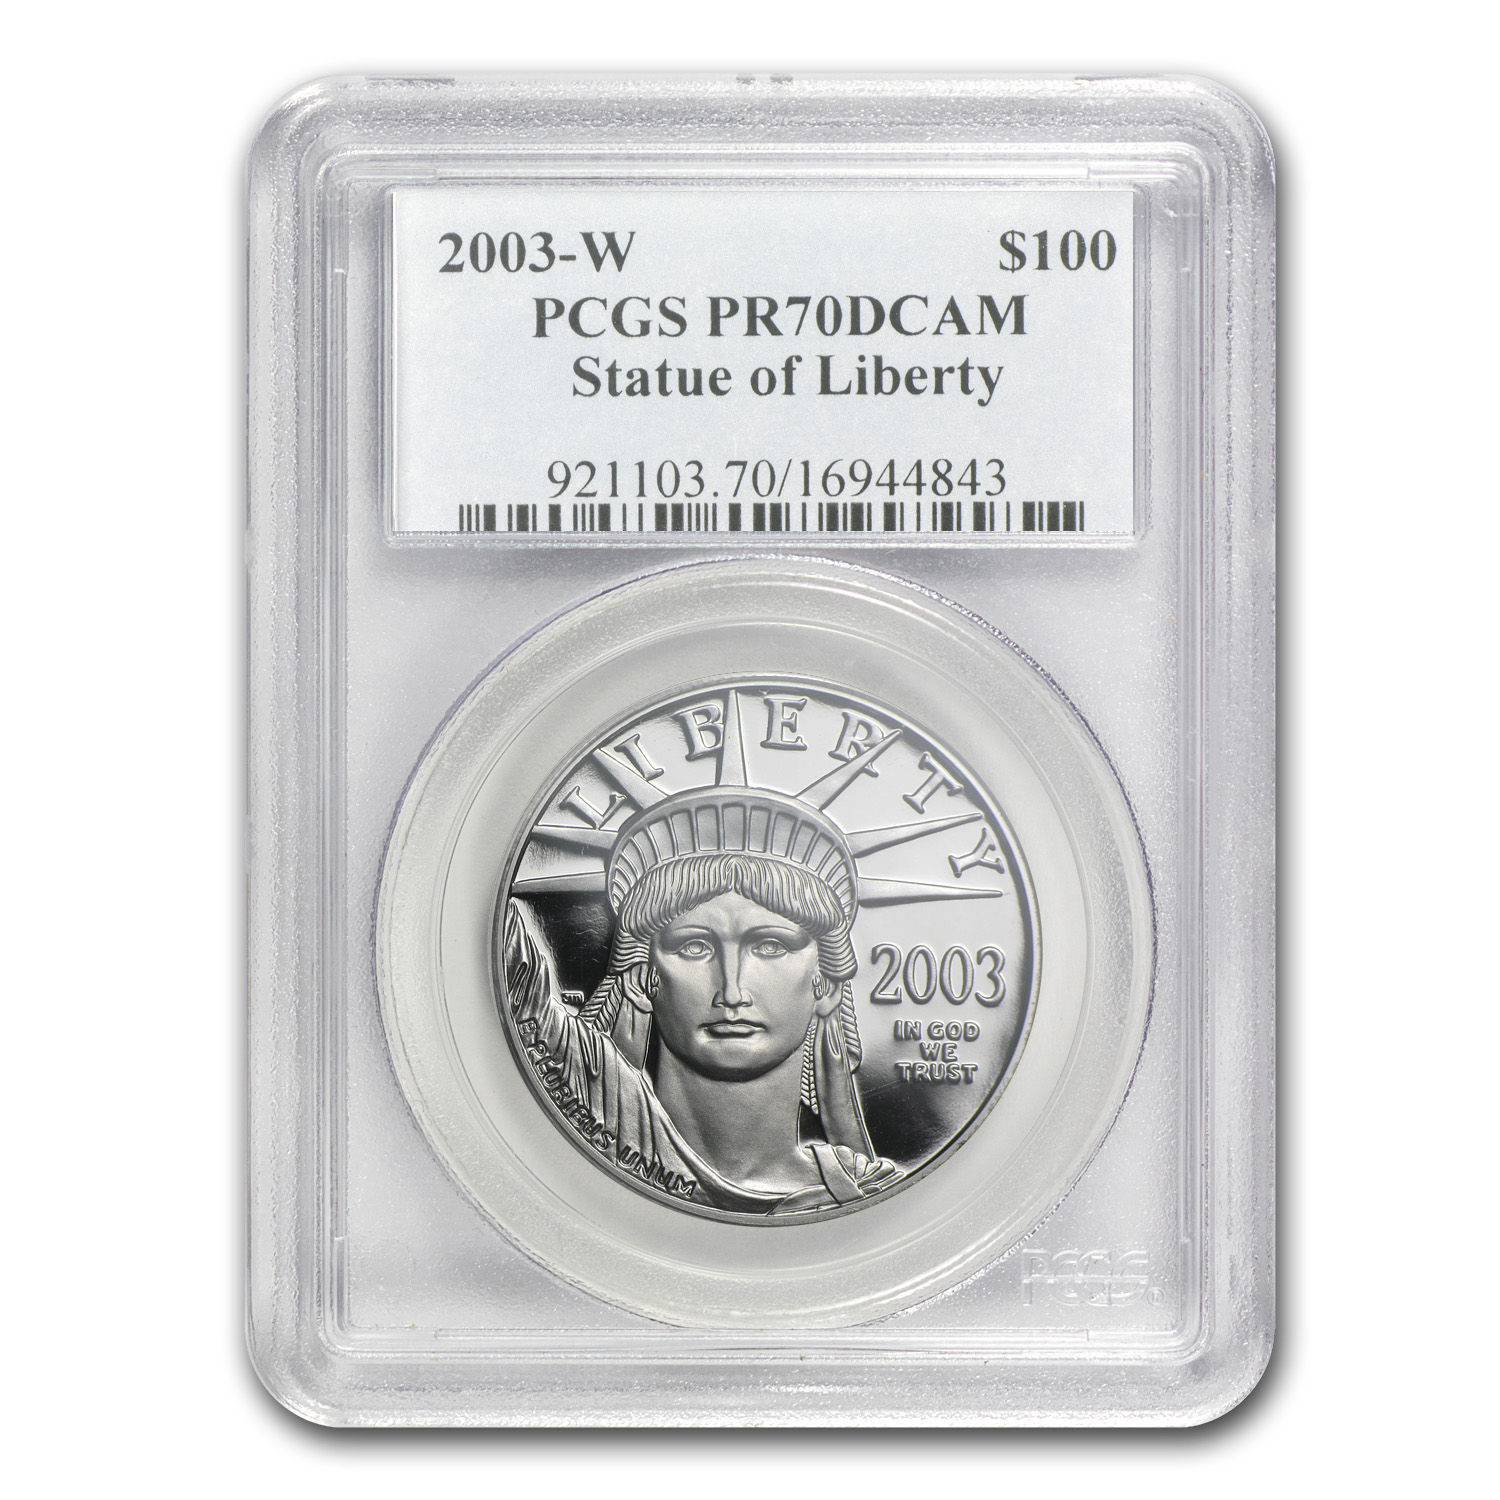 2003-W 4-Coin Proof Platinum American Eagle Set PR-70 PCGS